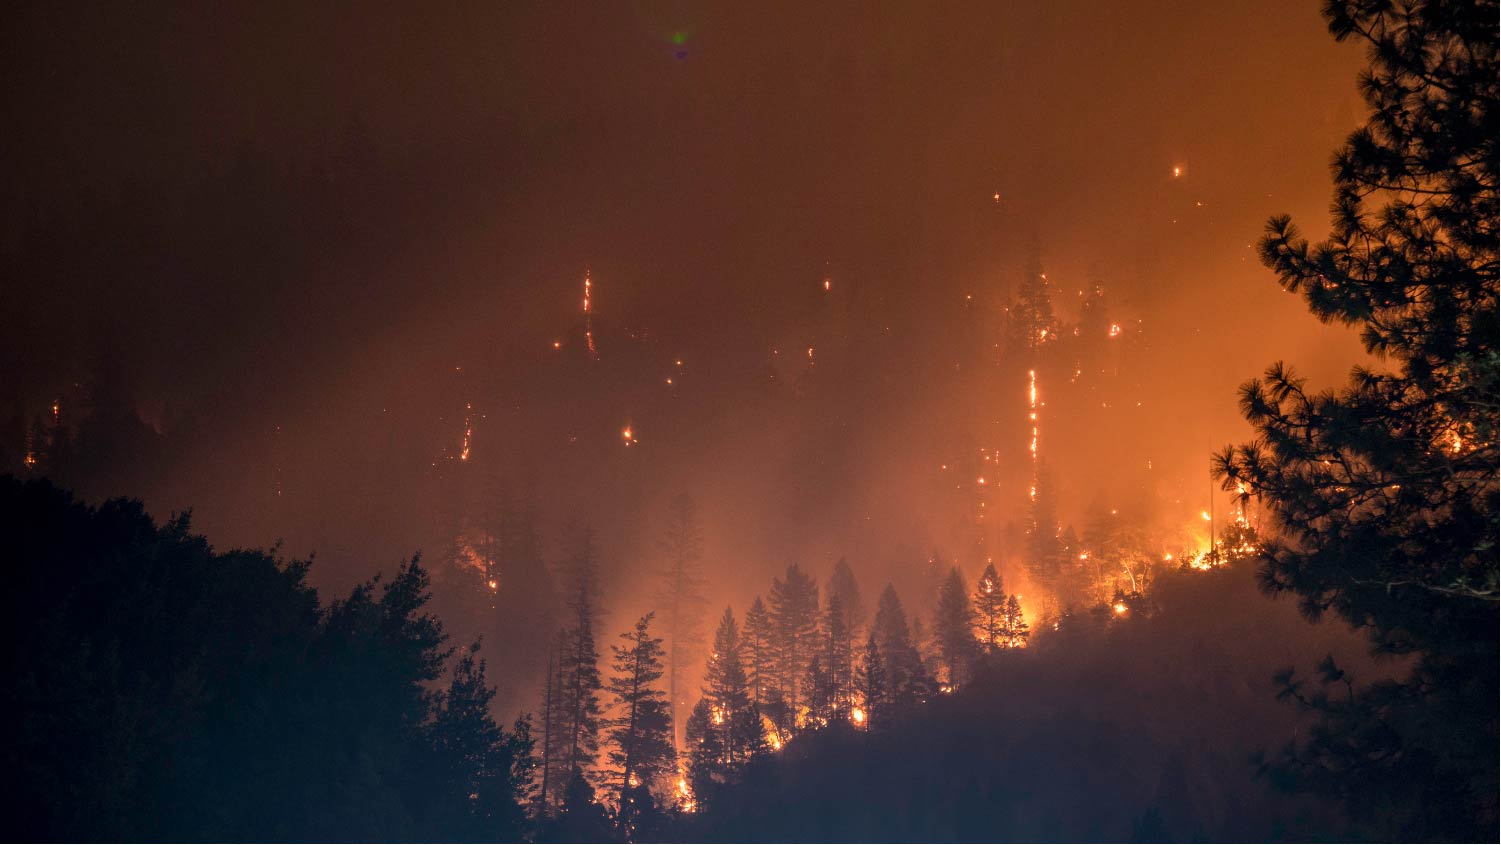 wildfire in forest